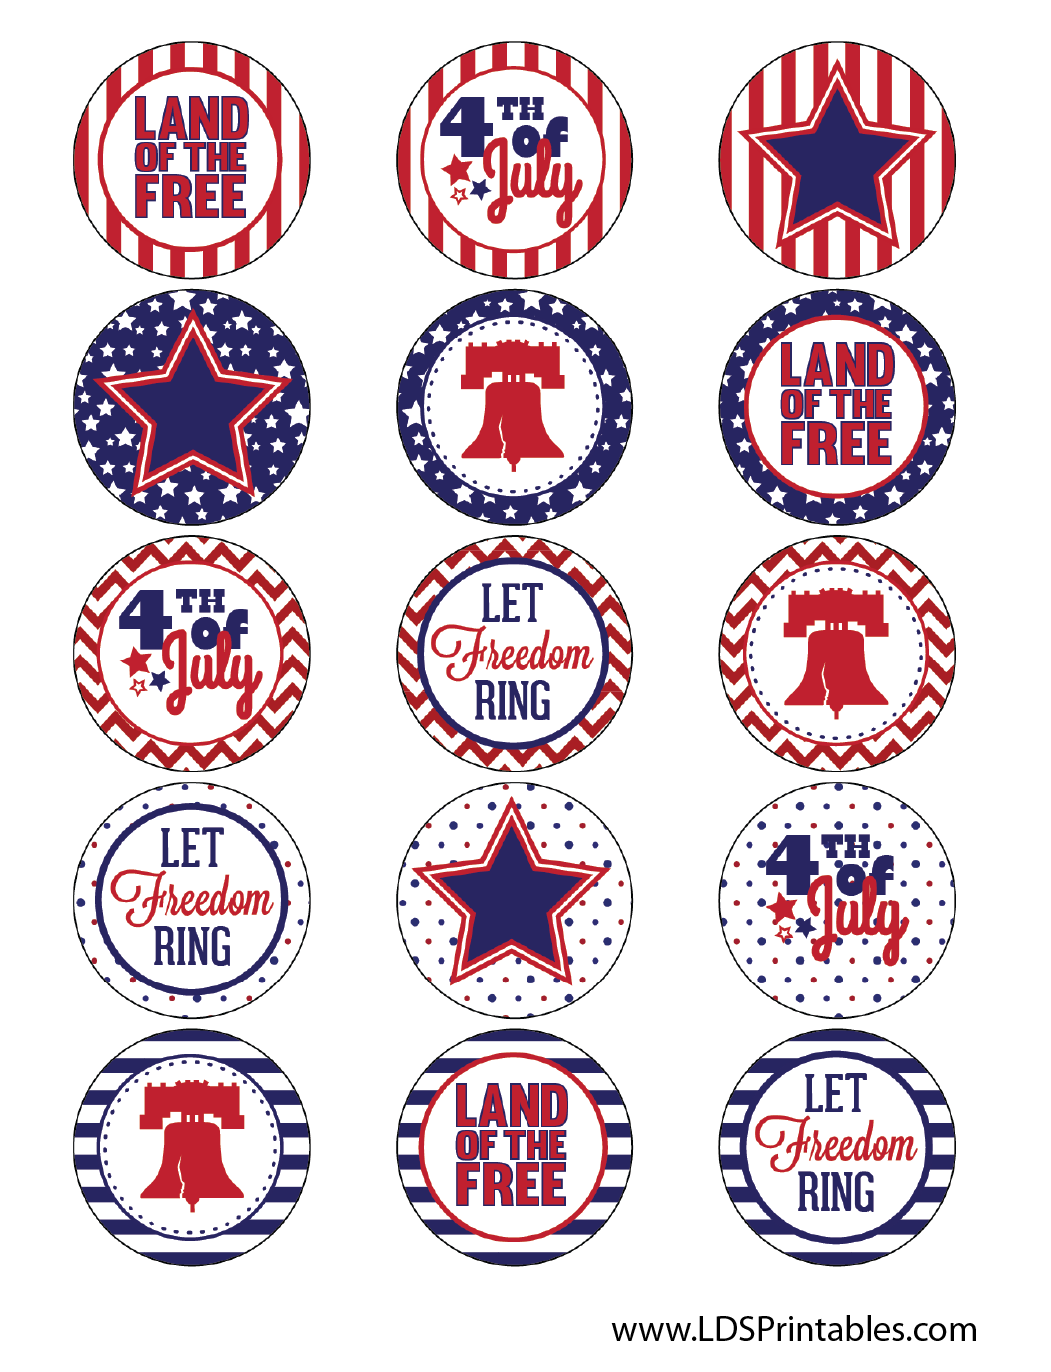 LDS Printables: 4th of July Party Printables and Thoughts About ...